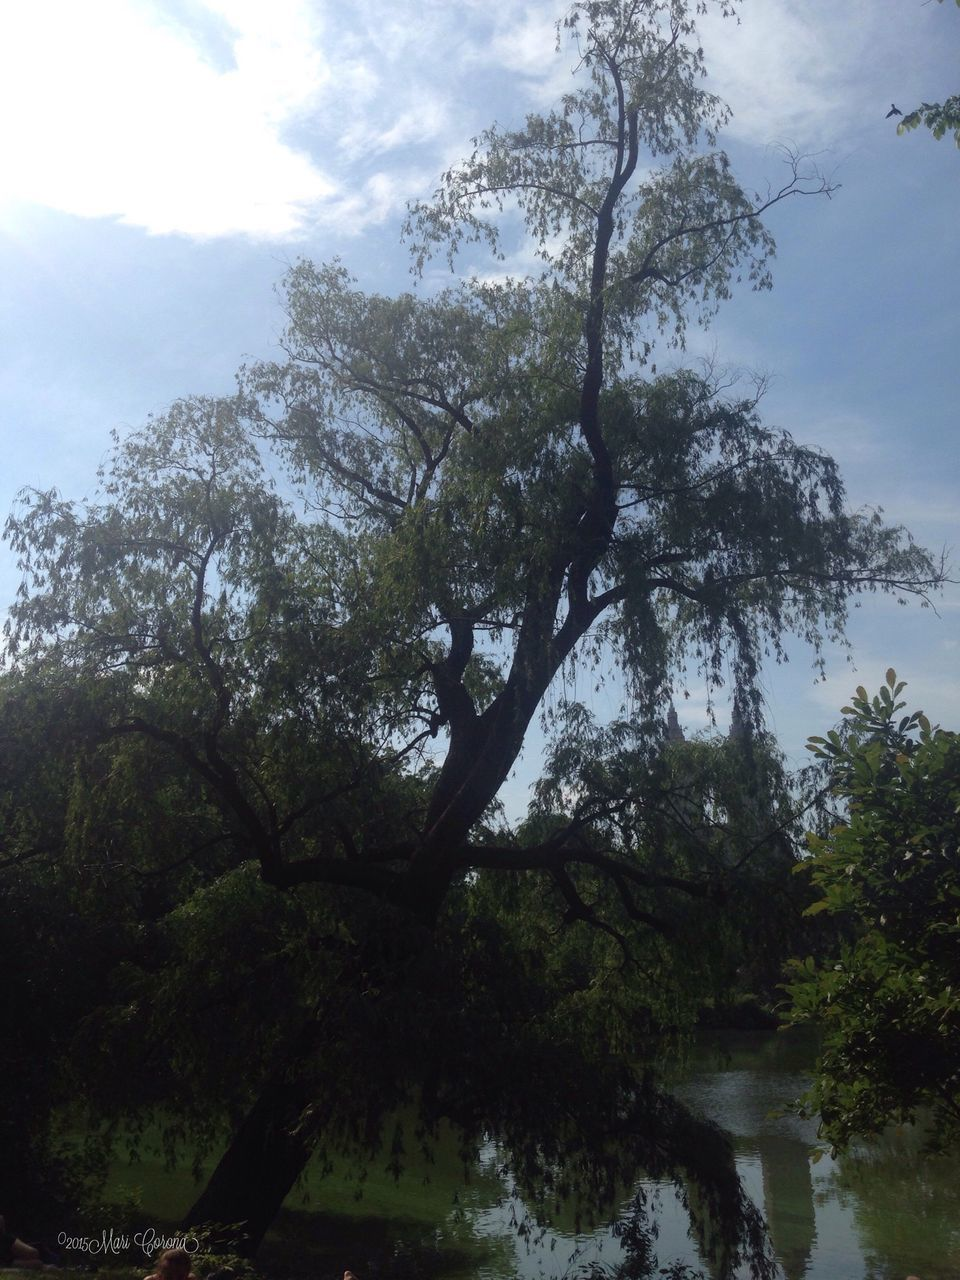 tree, nature, tranquility, sky, beauty in nature, growth, water, day, outdoors, reflection, no people, scenics, branch, low angle view, forest